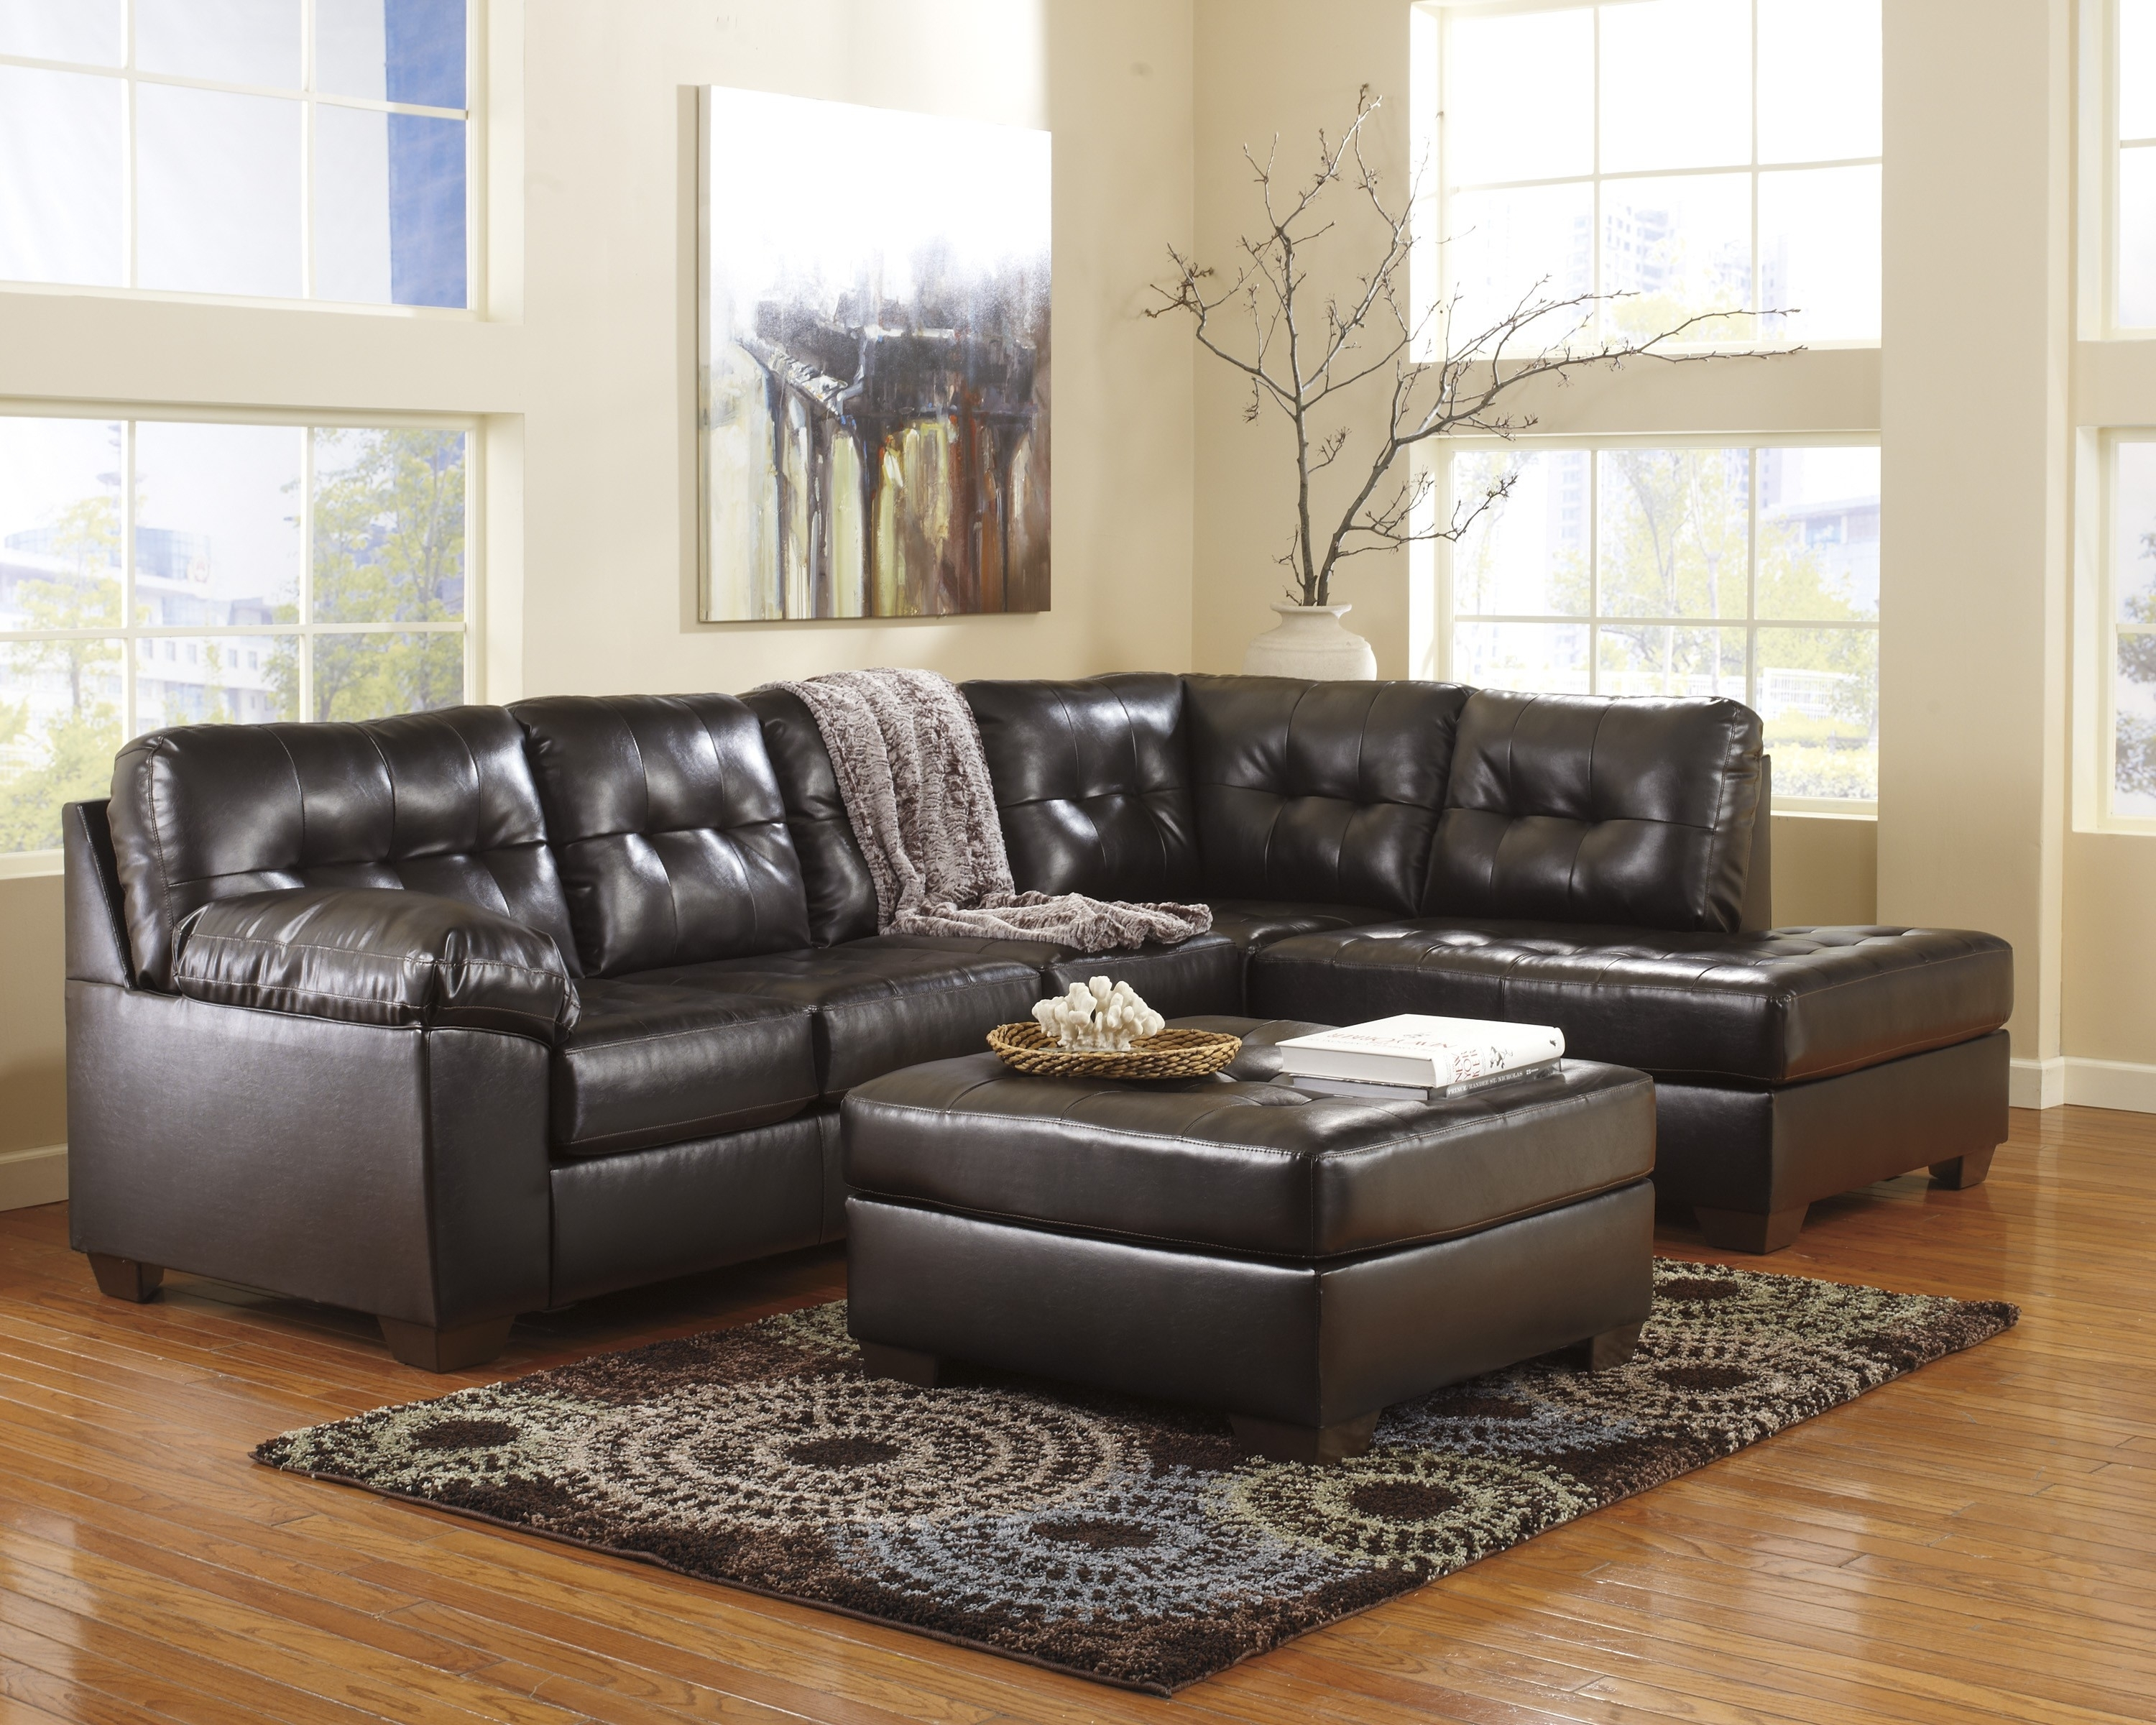 Chocolate Sectional Sofa Set With Chaise | Baci Living Room Pertaining To Norfolk Chocolate 6 Piece Sectionals With Laf Chaise (Image 3 of 25)